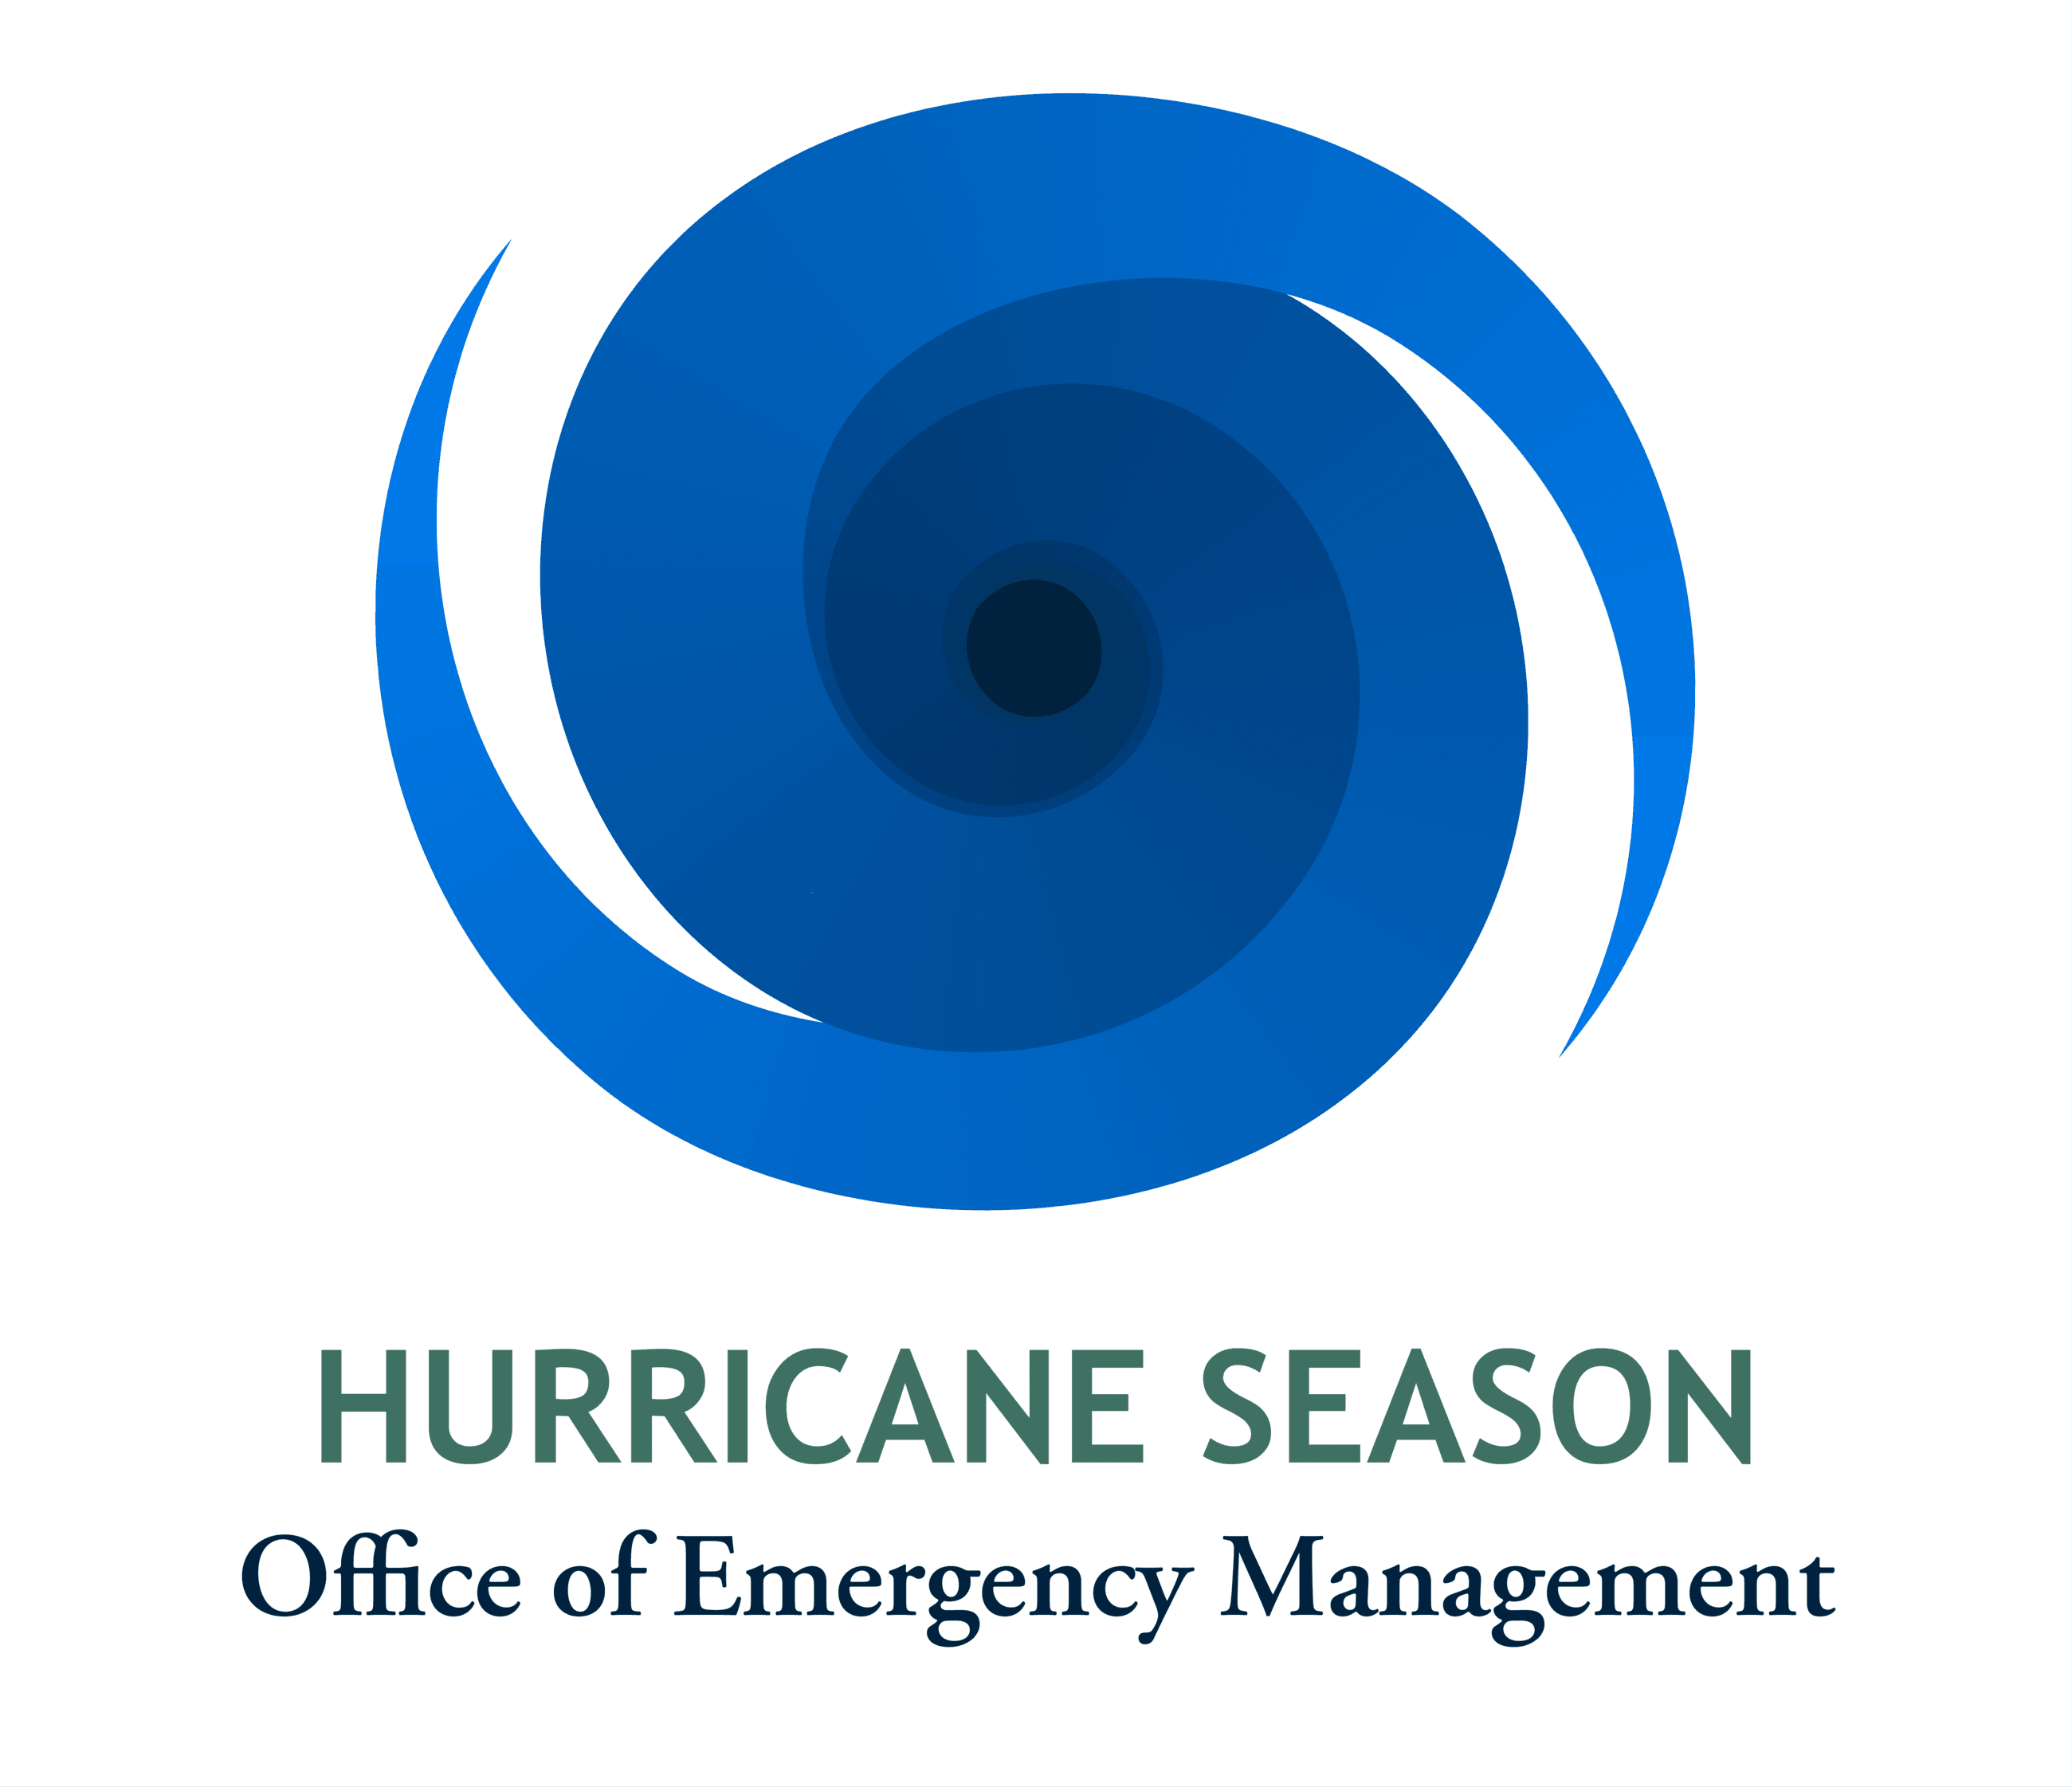 Hurricane Season 2020_blue hurricane